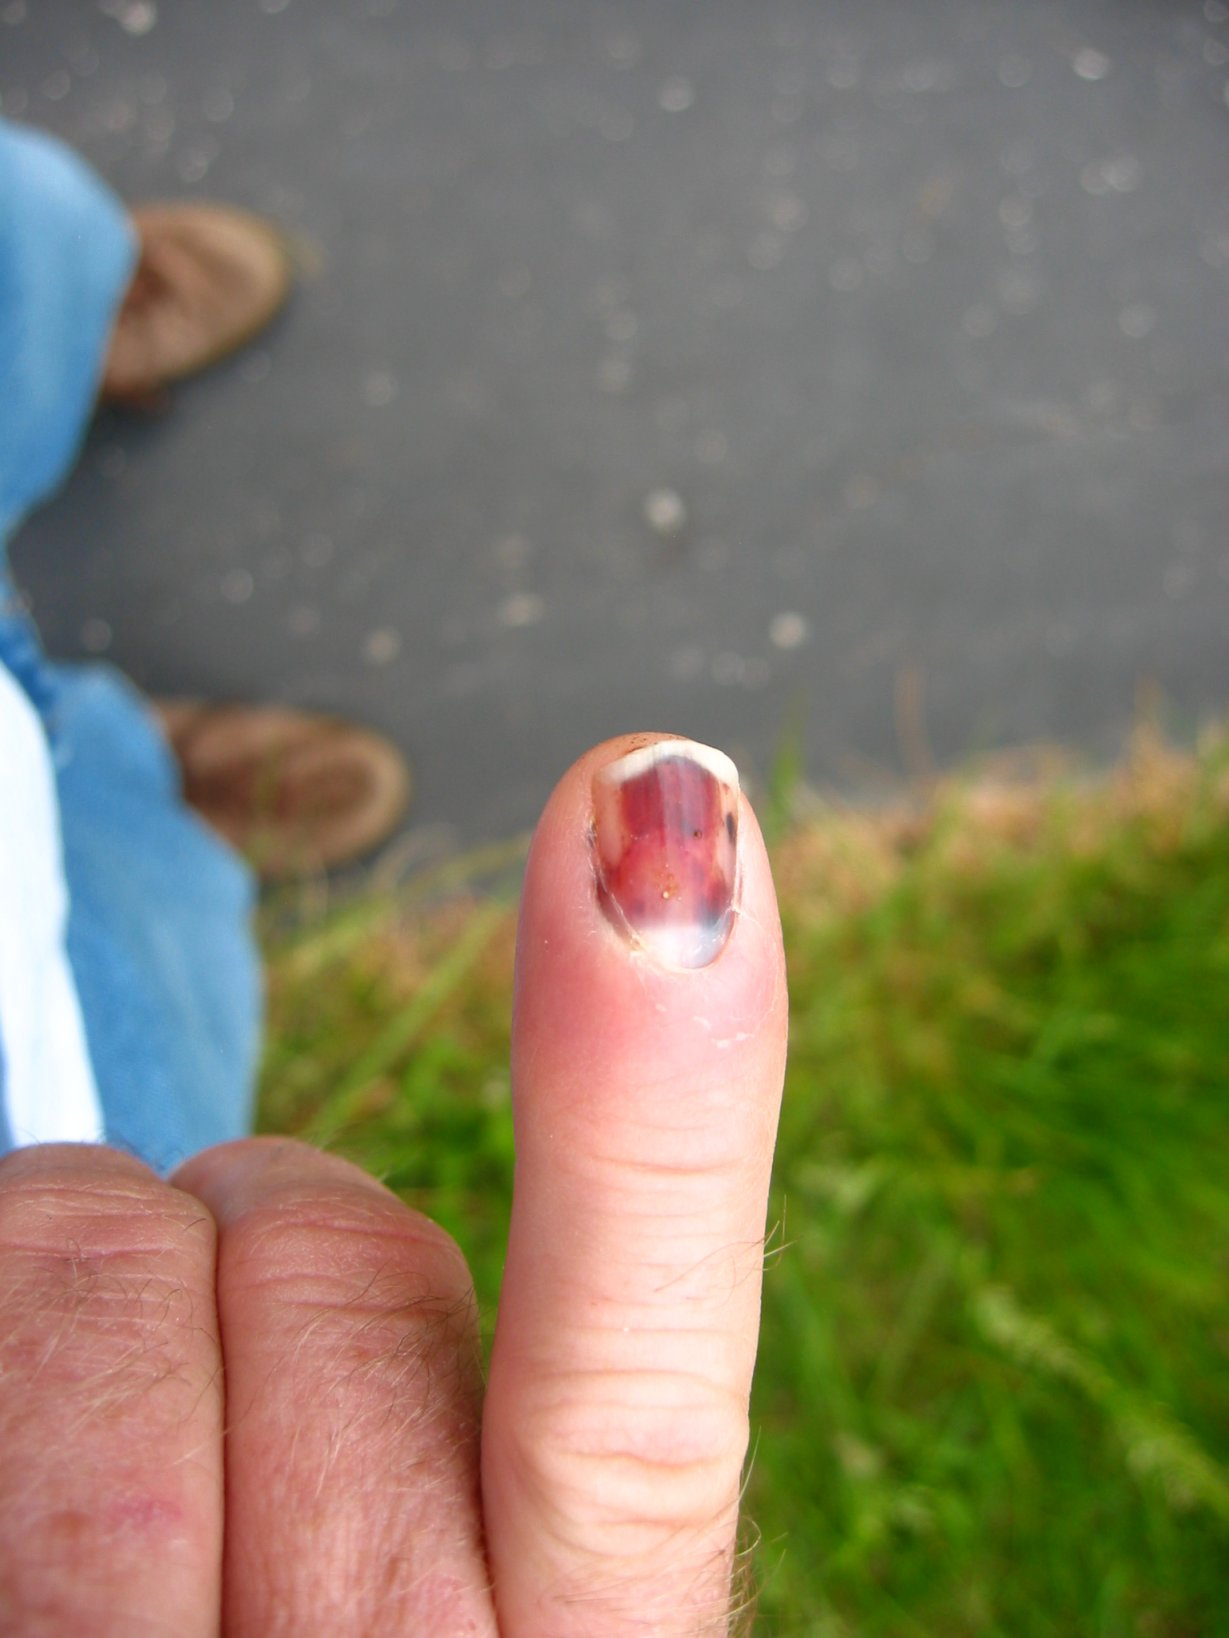 Smashed fingernail